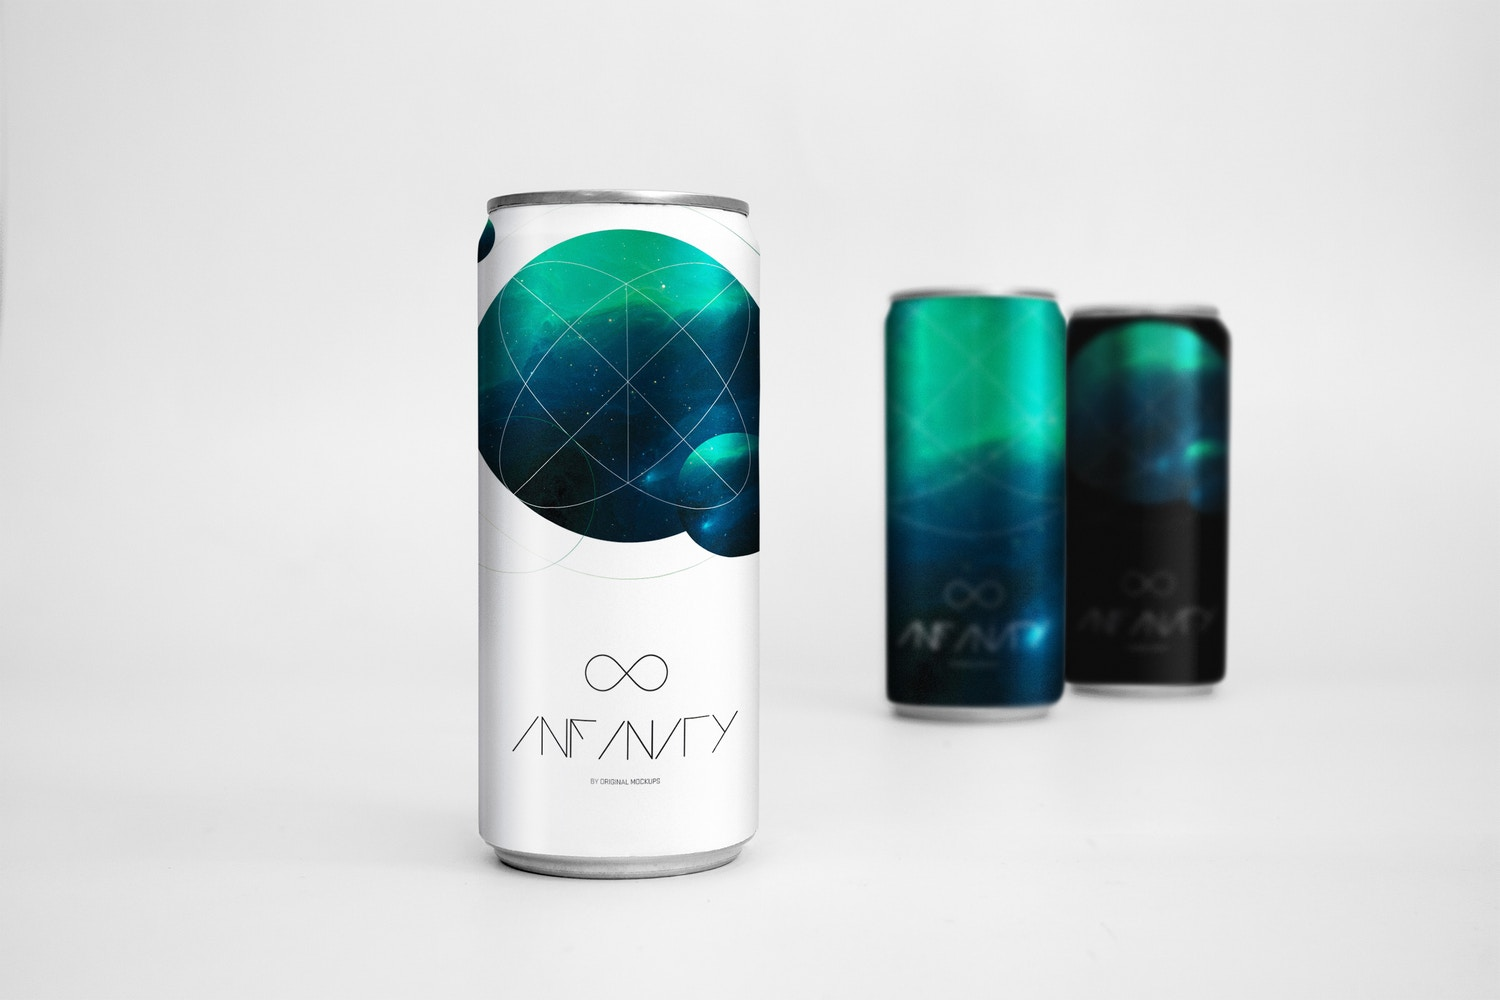 Cans Mockup 3 by Original Mockups on Original Mockups